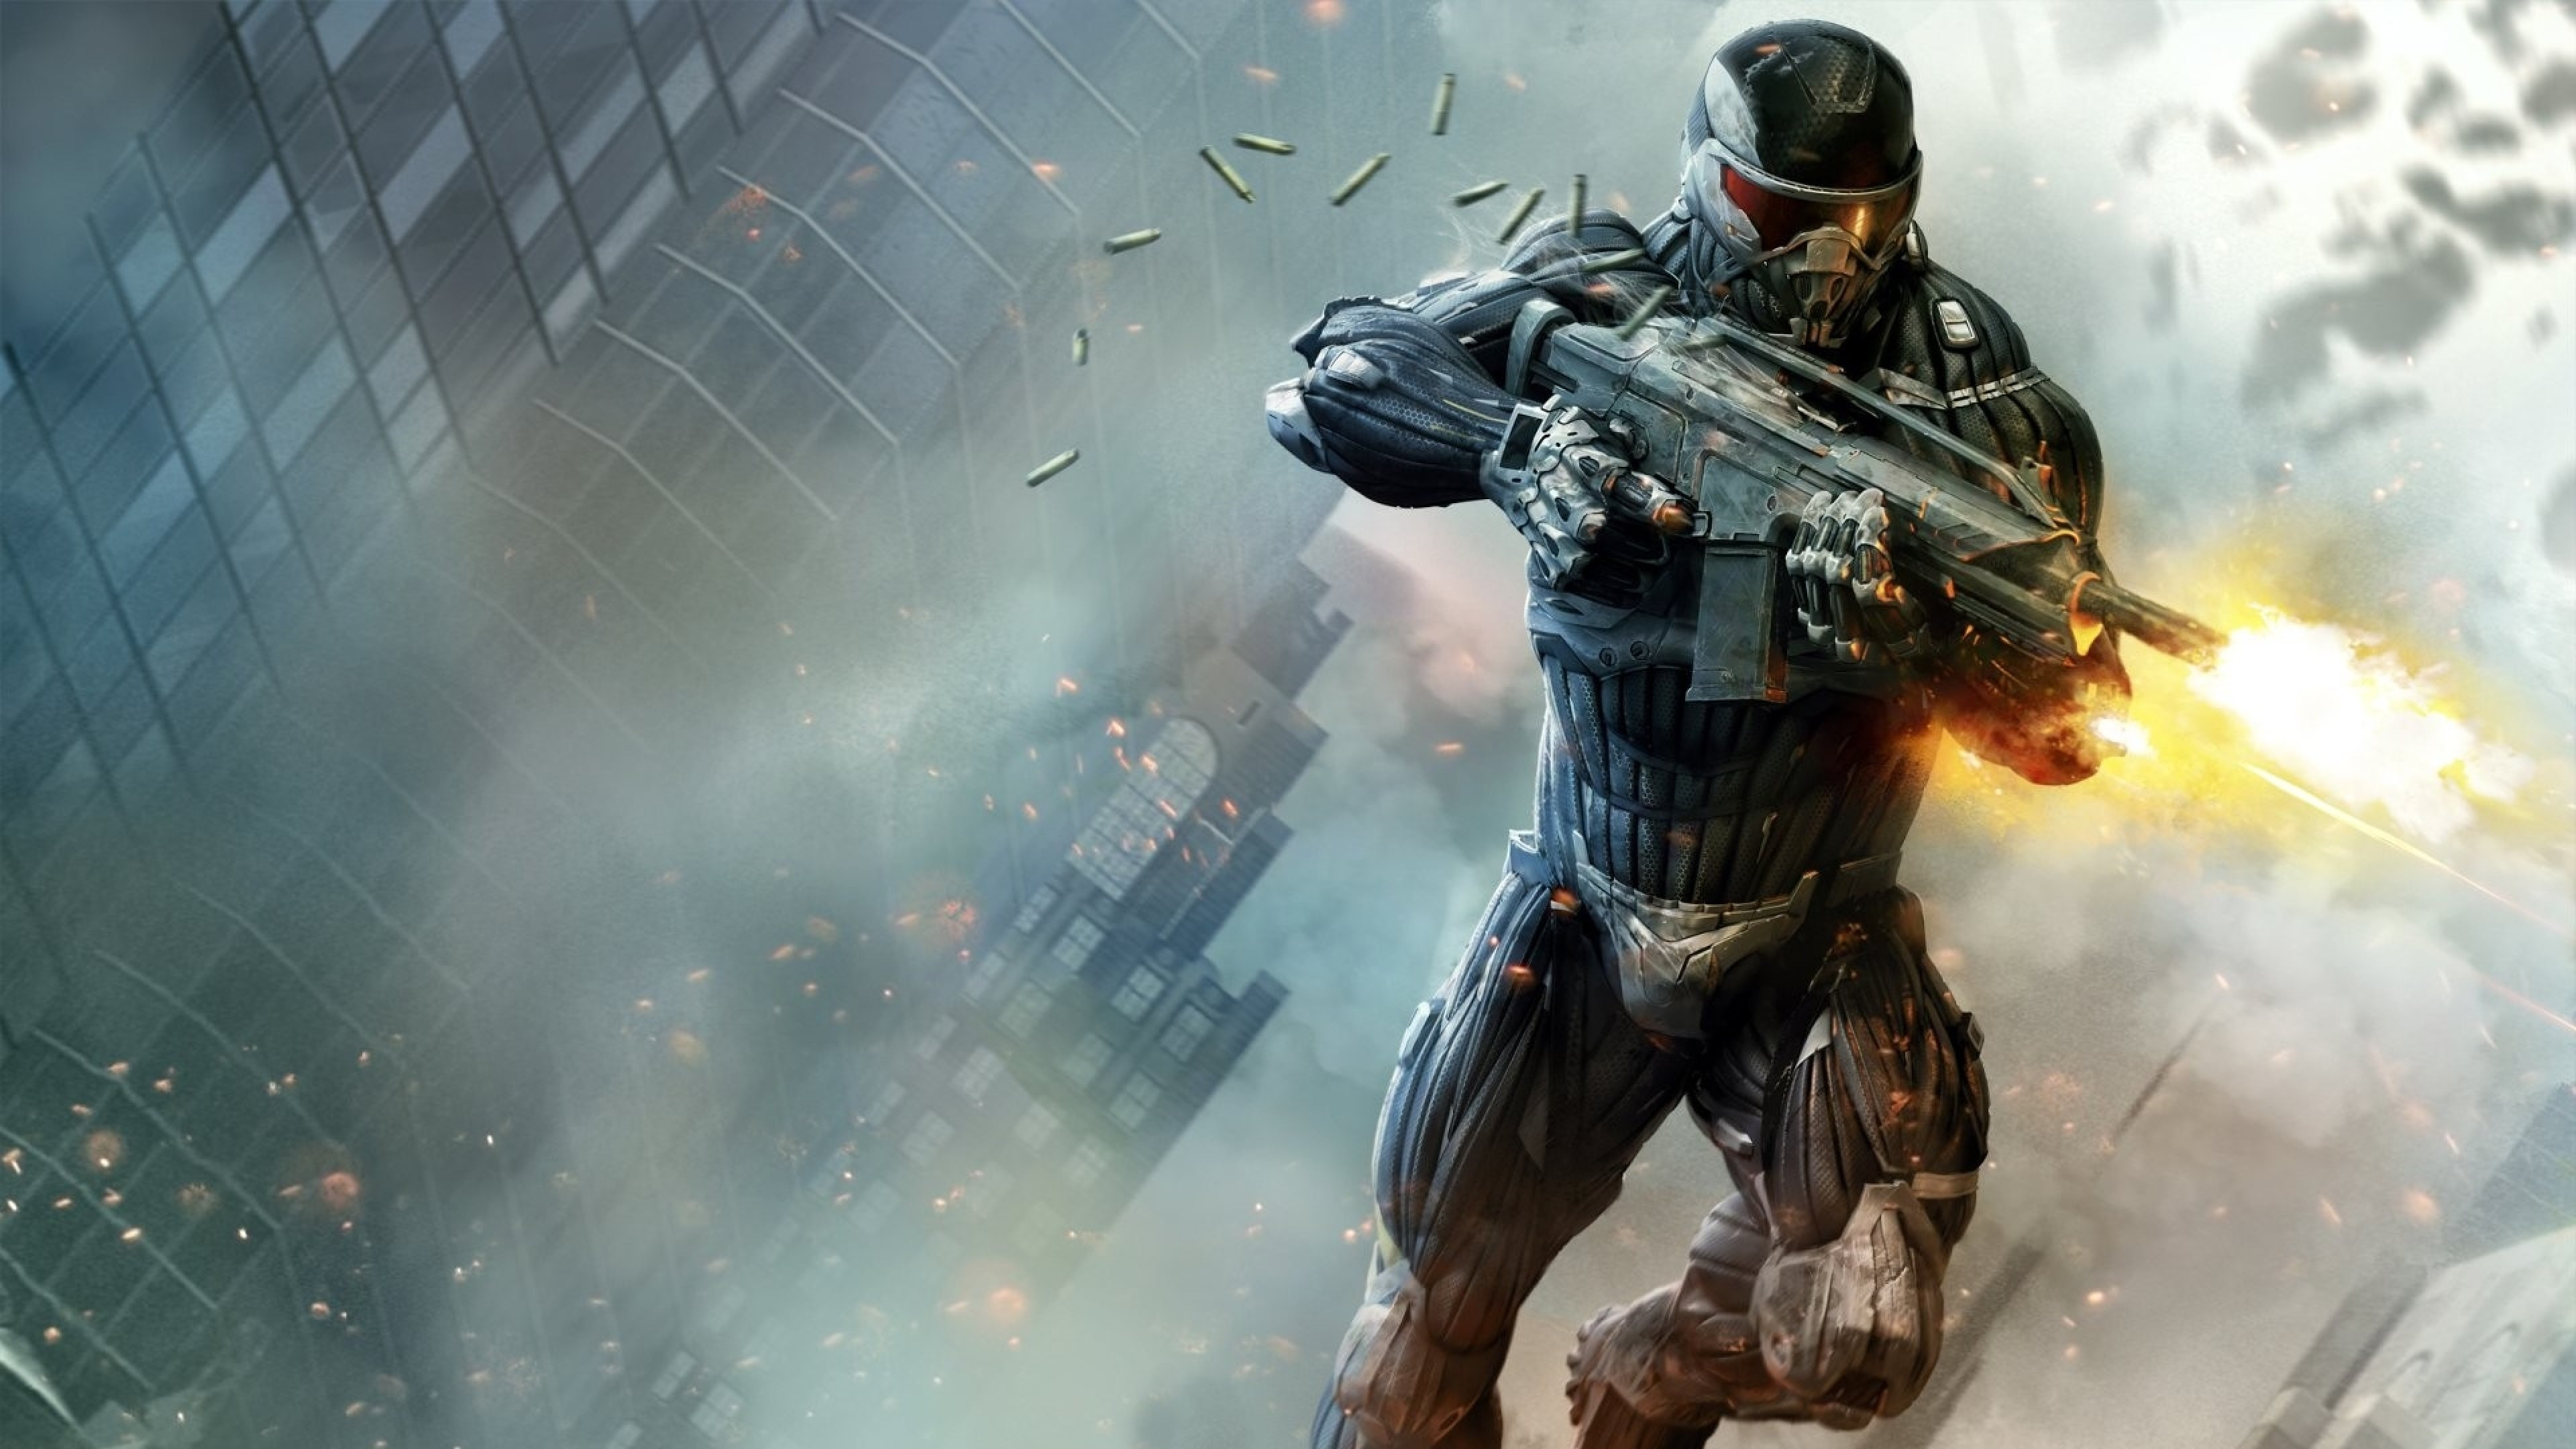 Crysis Wallpaper HD (75+ Images